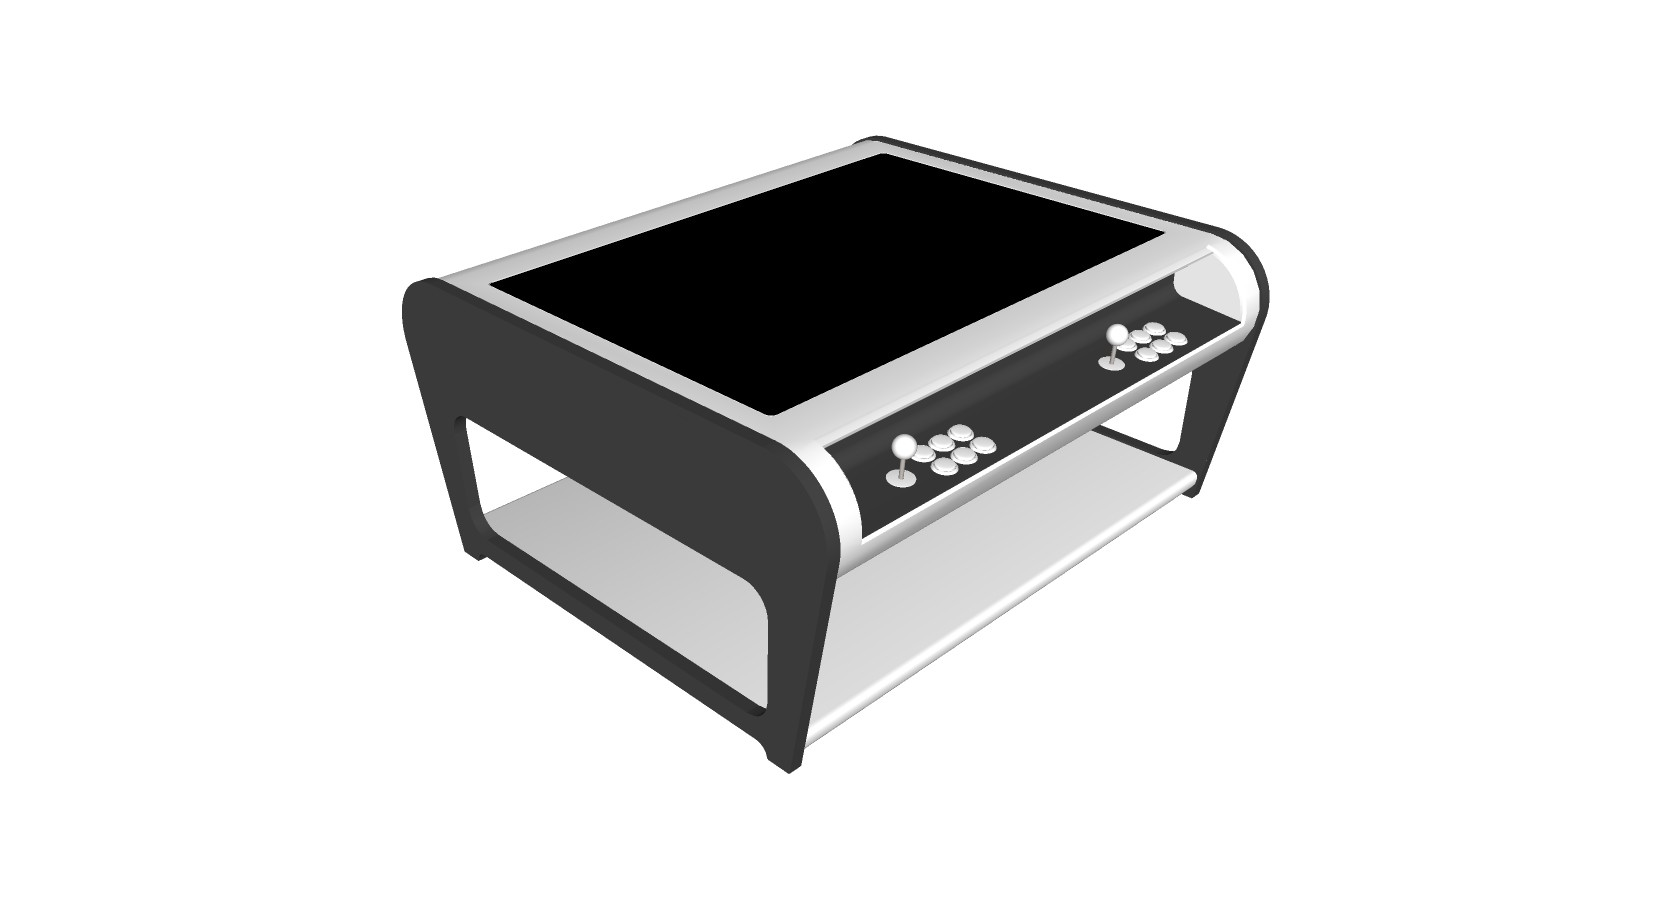 Modern Coffee Table Style Arcade Machine With 960 Plus Games - gray